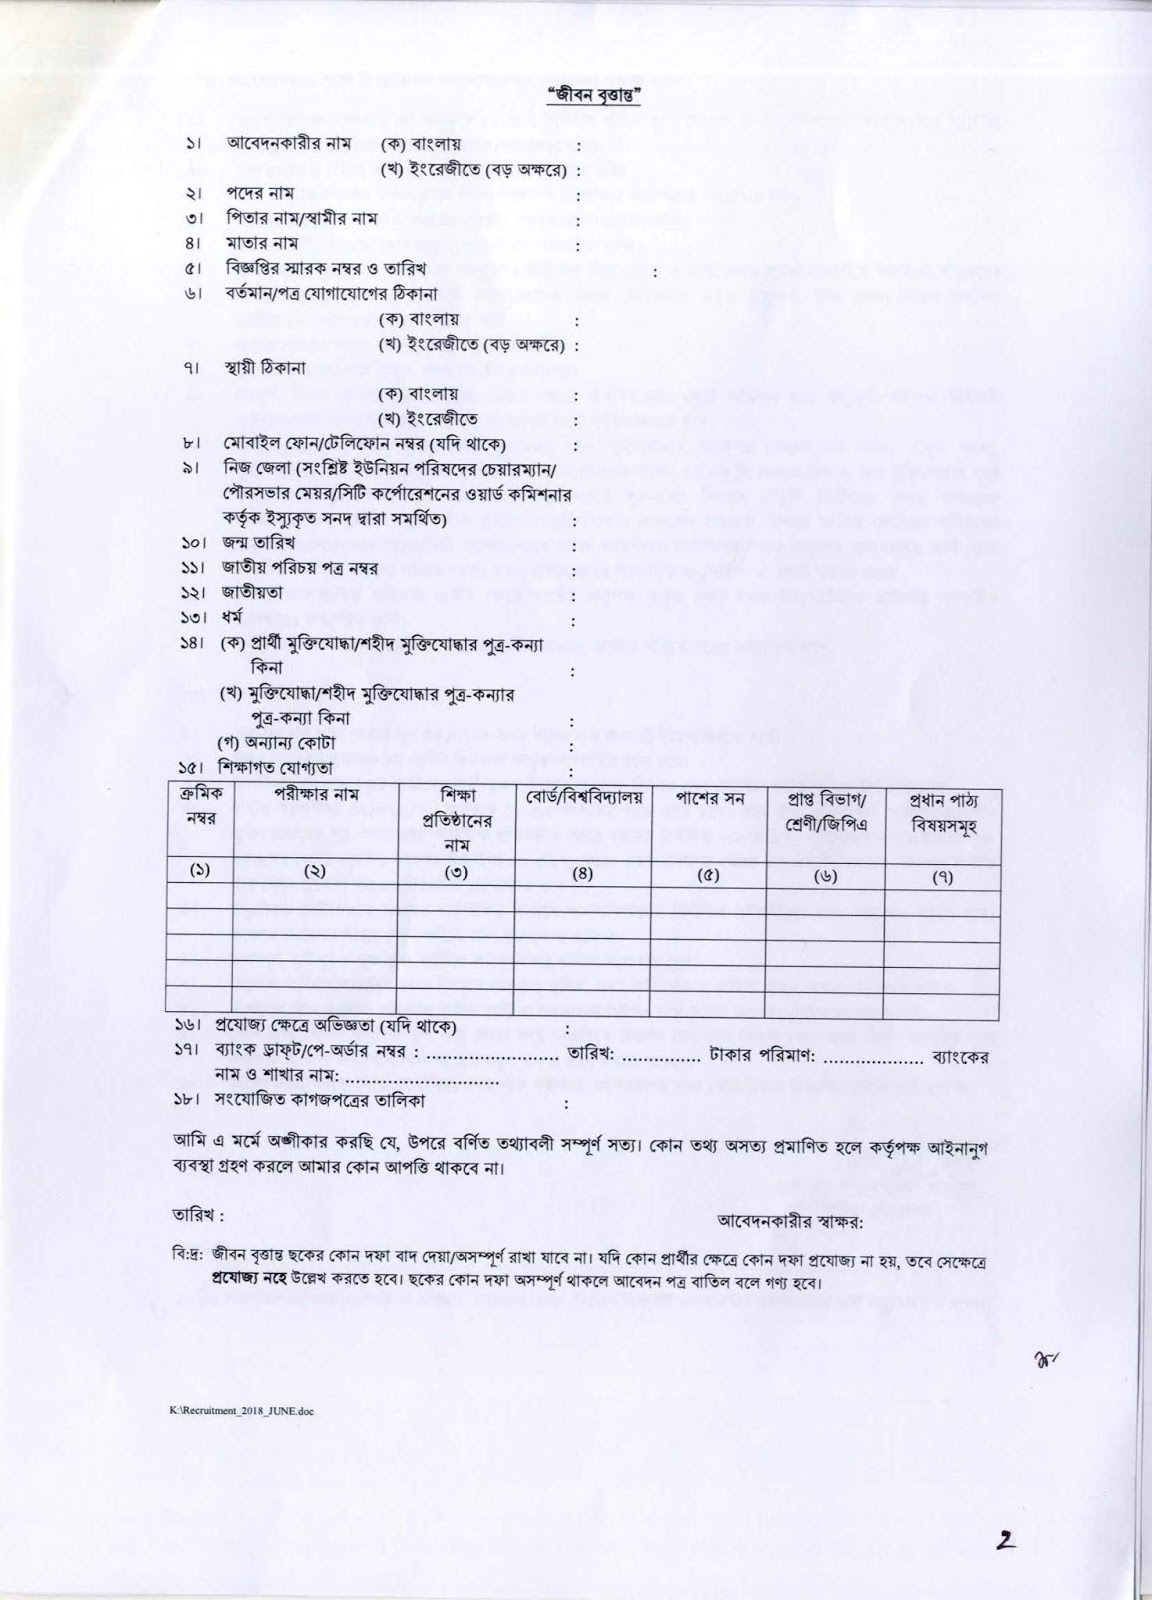 Water Resources Planning Organization (WRPO) Application Form